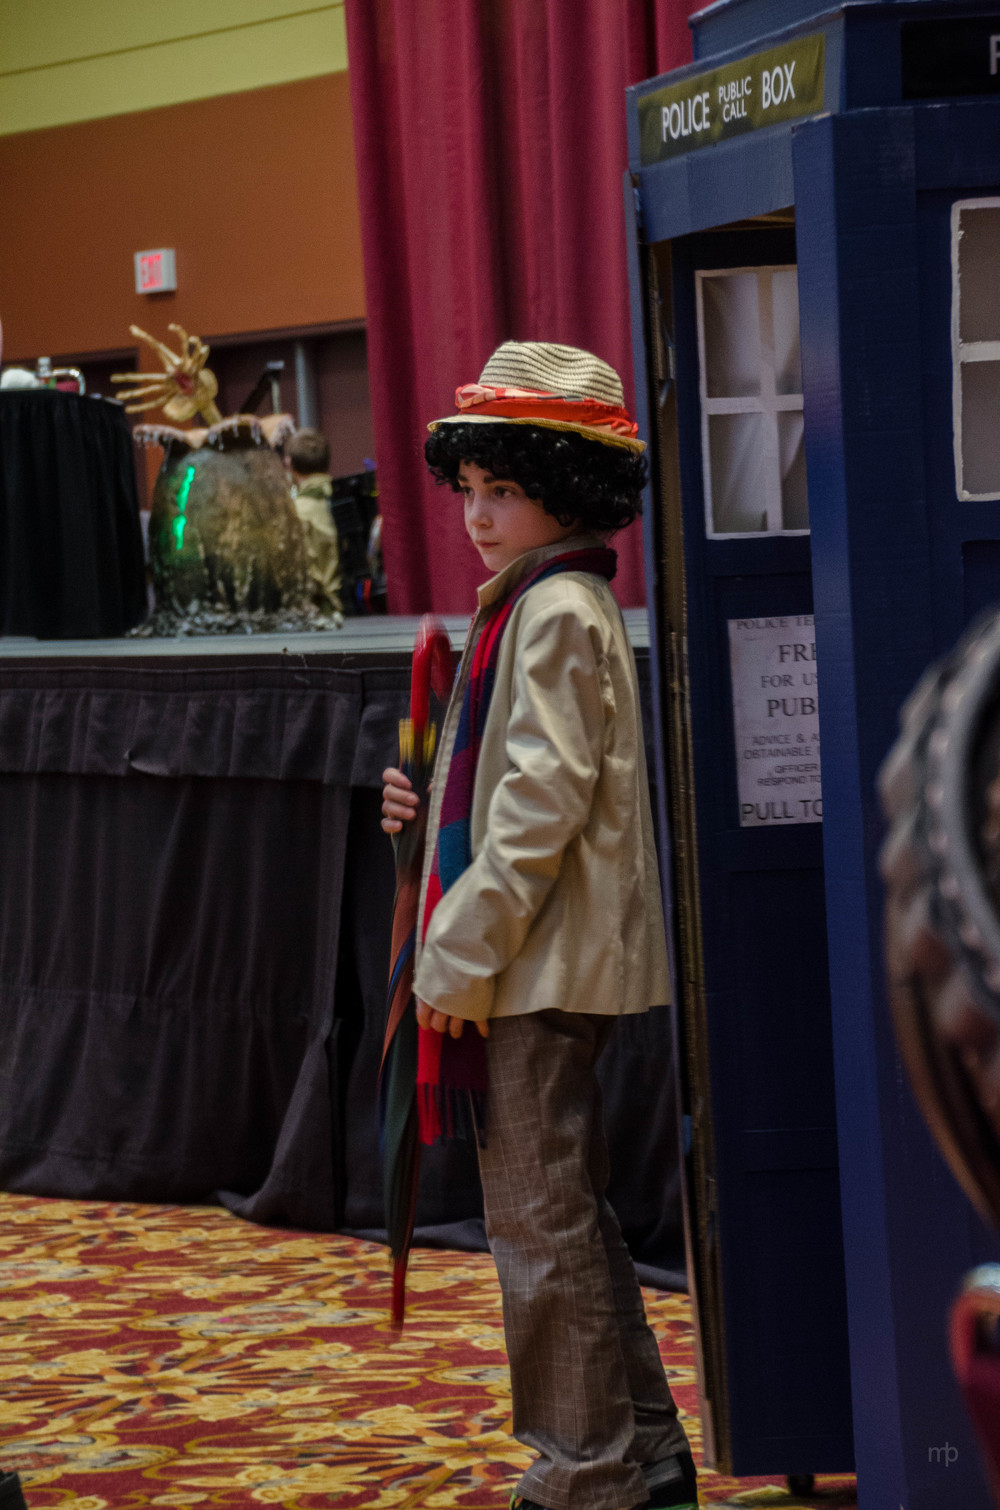 Seventh Doctor Who cosplay.  Taken at Planet Comicon 2014.